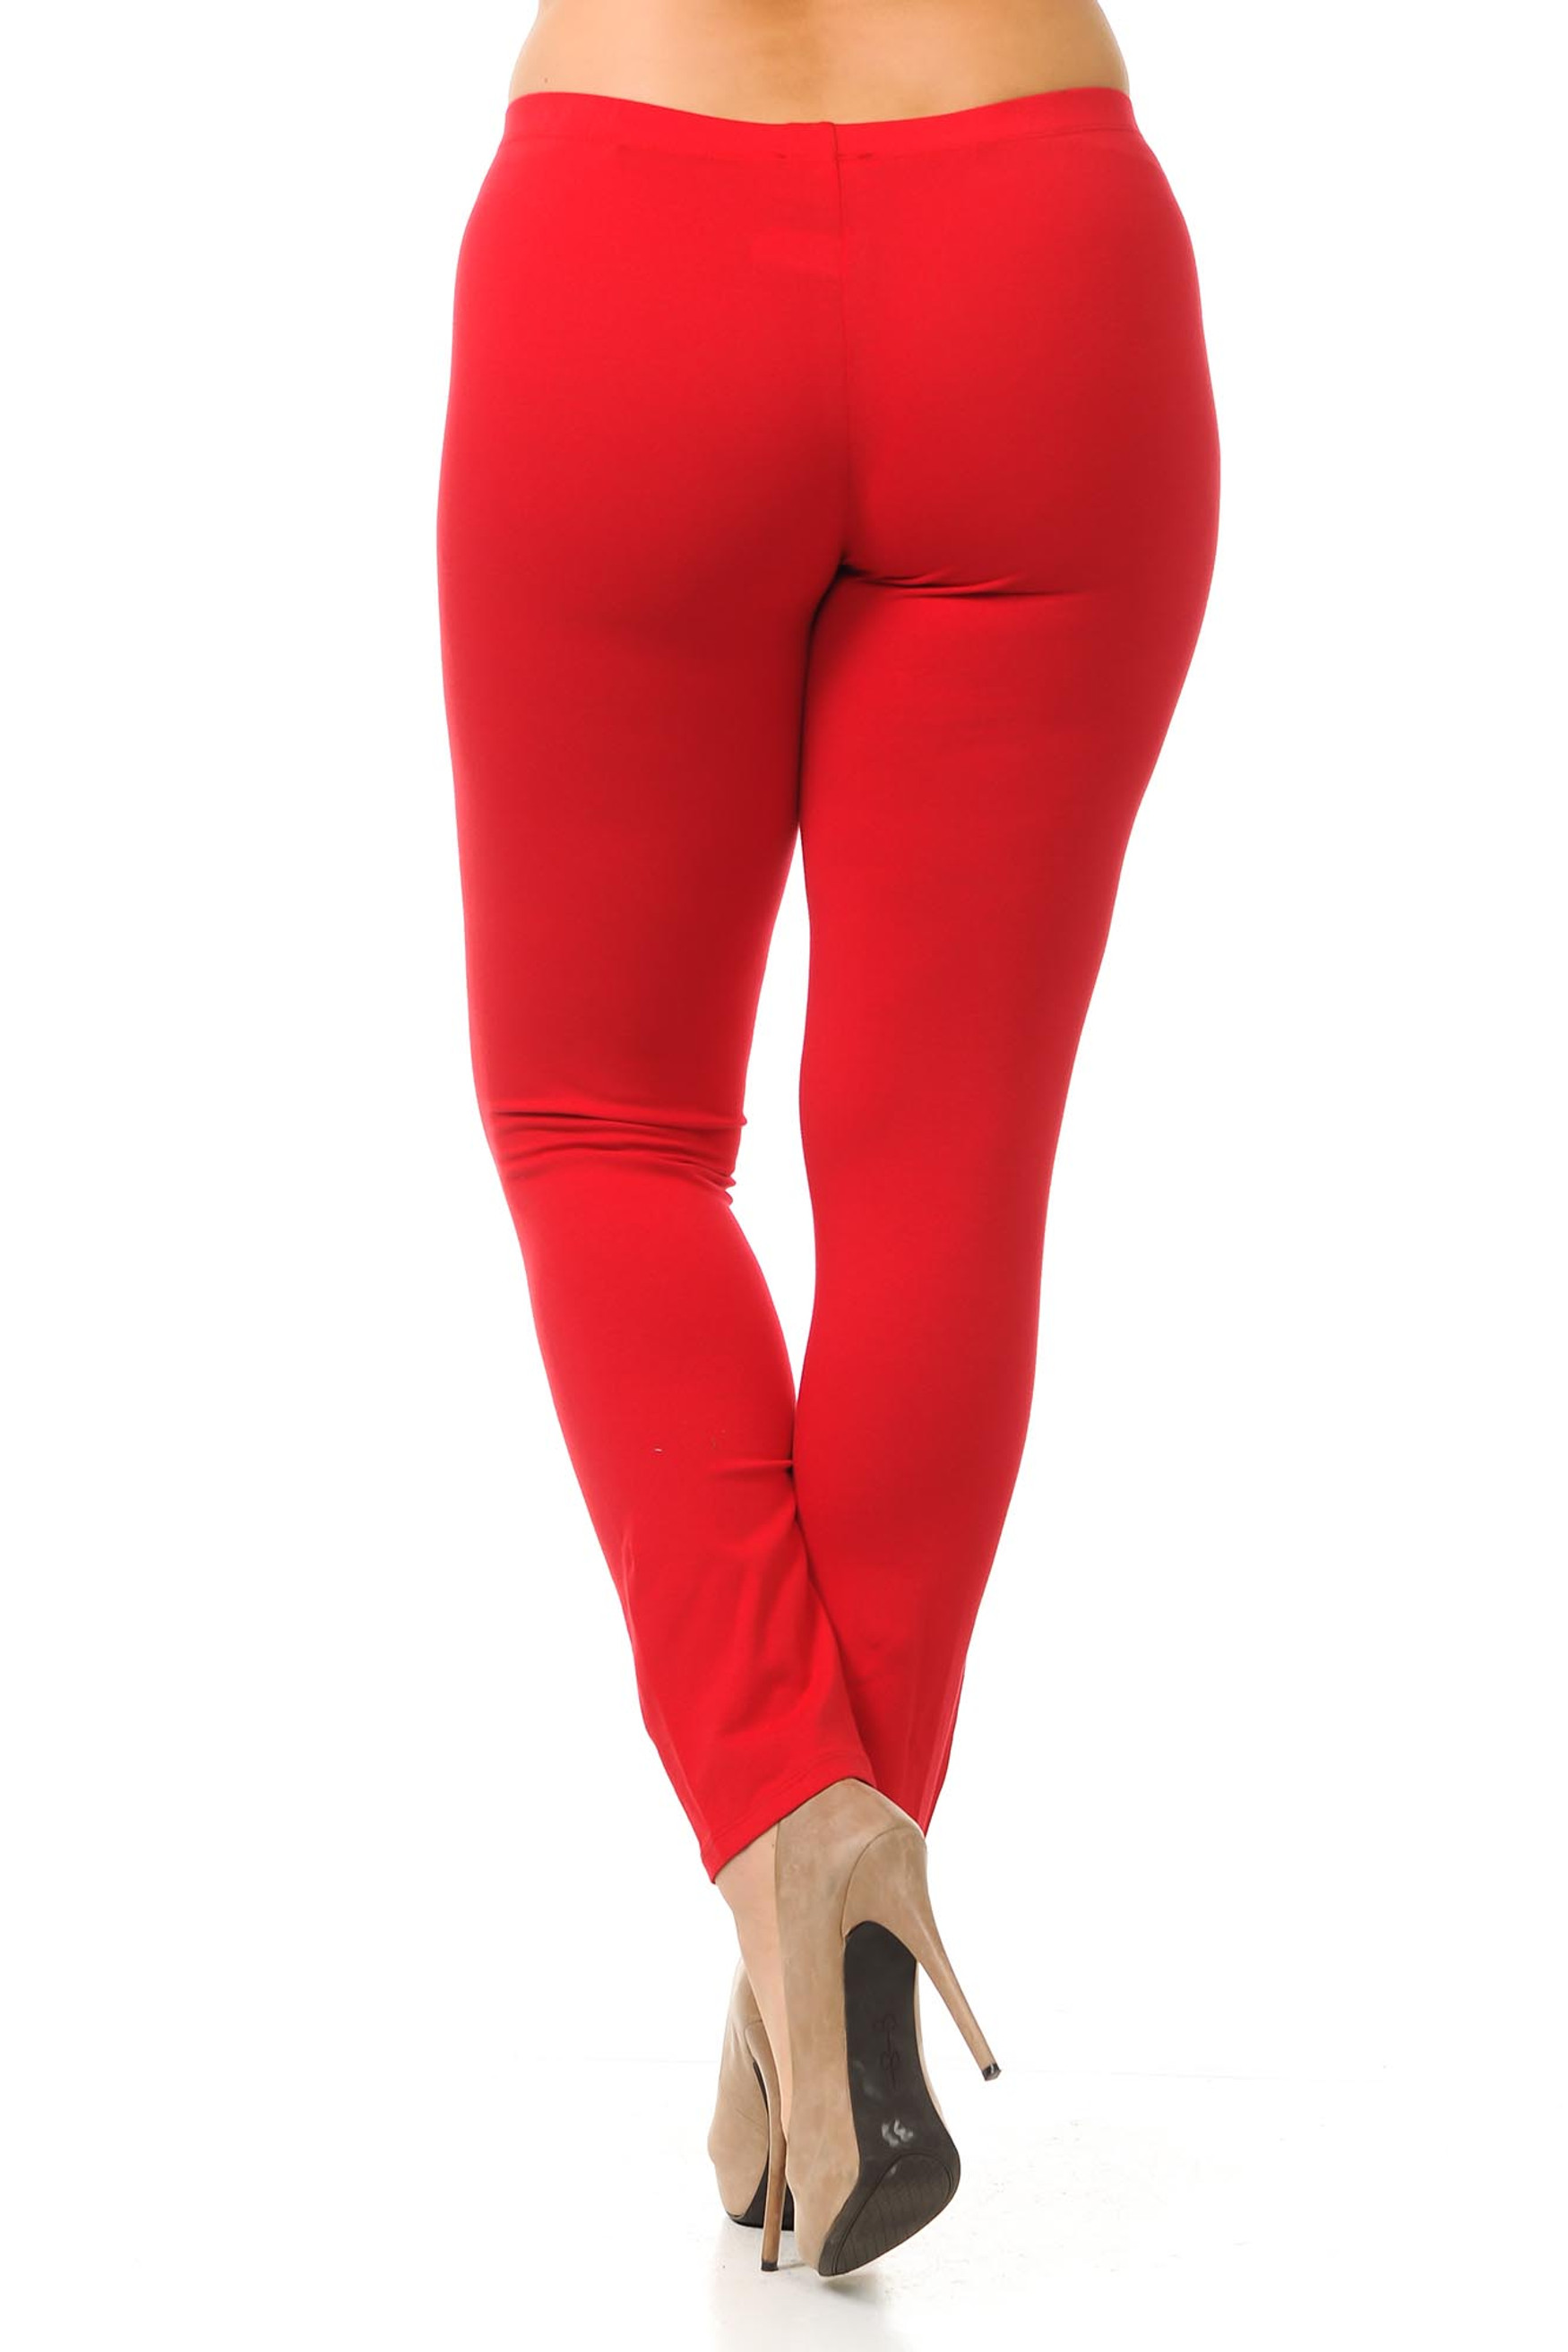 Rear view image of red made in USA plus size cotton leggings with a full length hem.